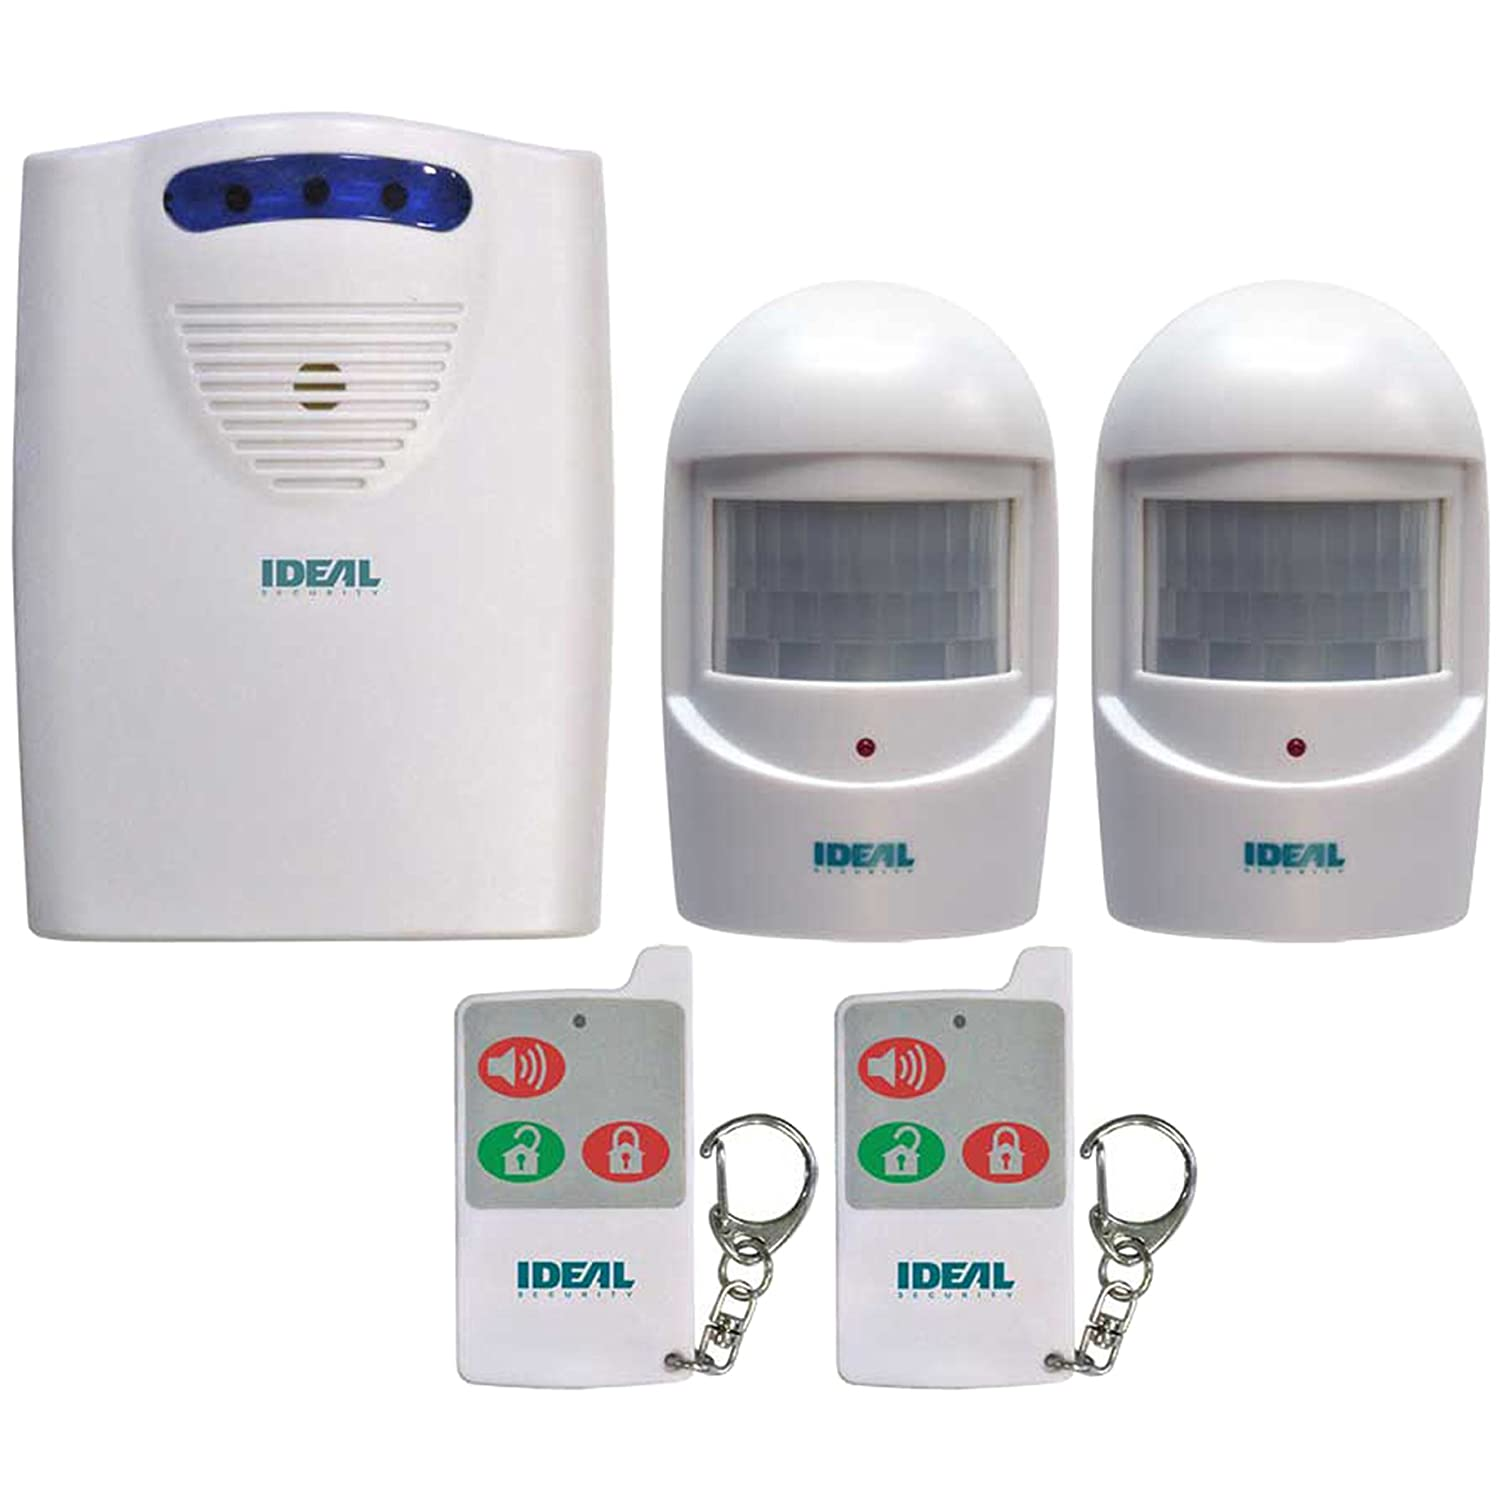 3. Ideal Security SK6 Wireless Motion Sensor Kit